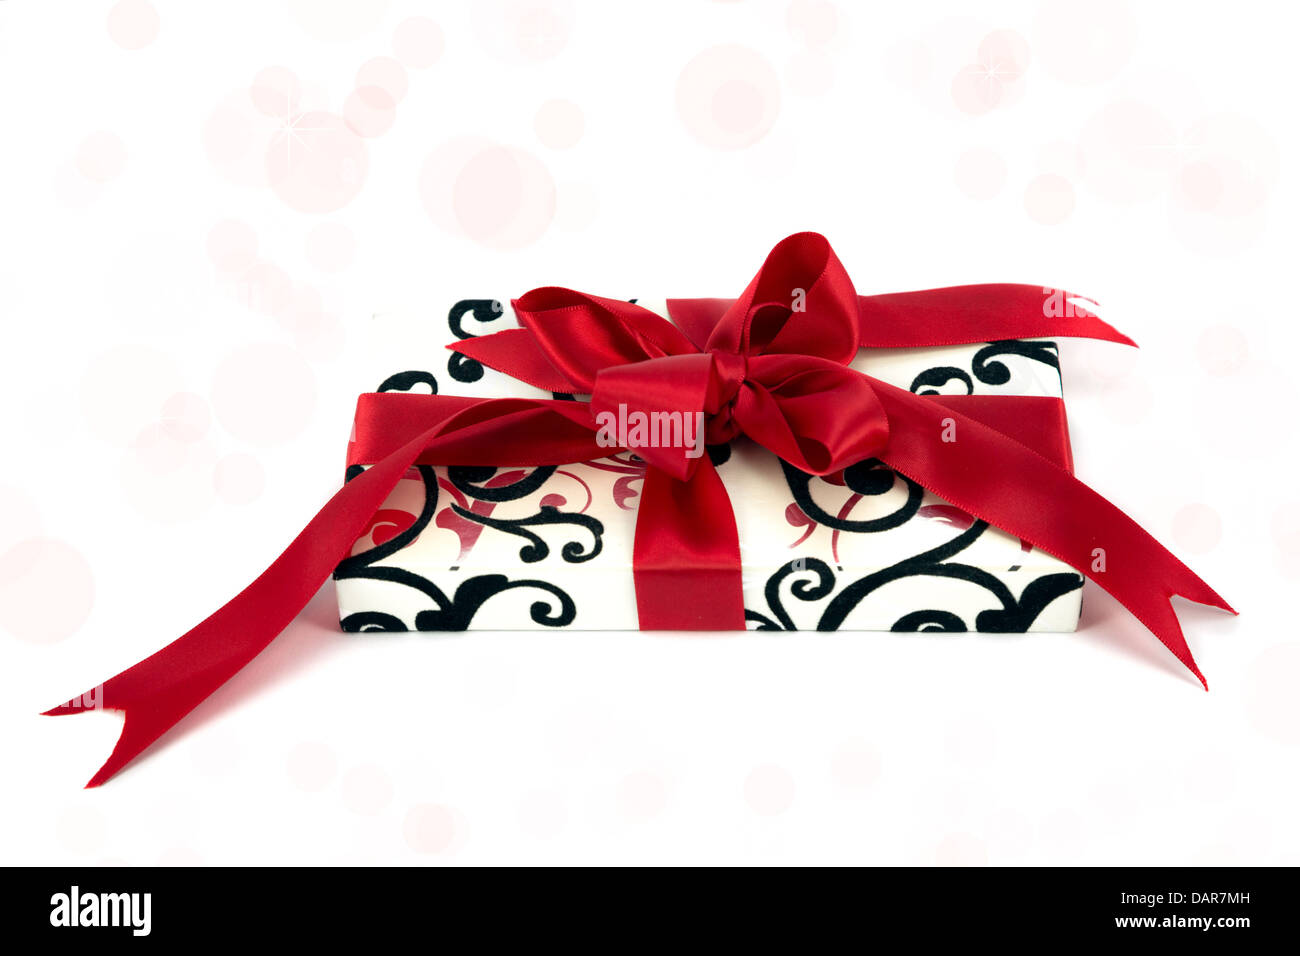 Gift wrapped with a red ribbon - Stock Image